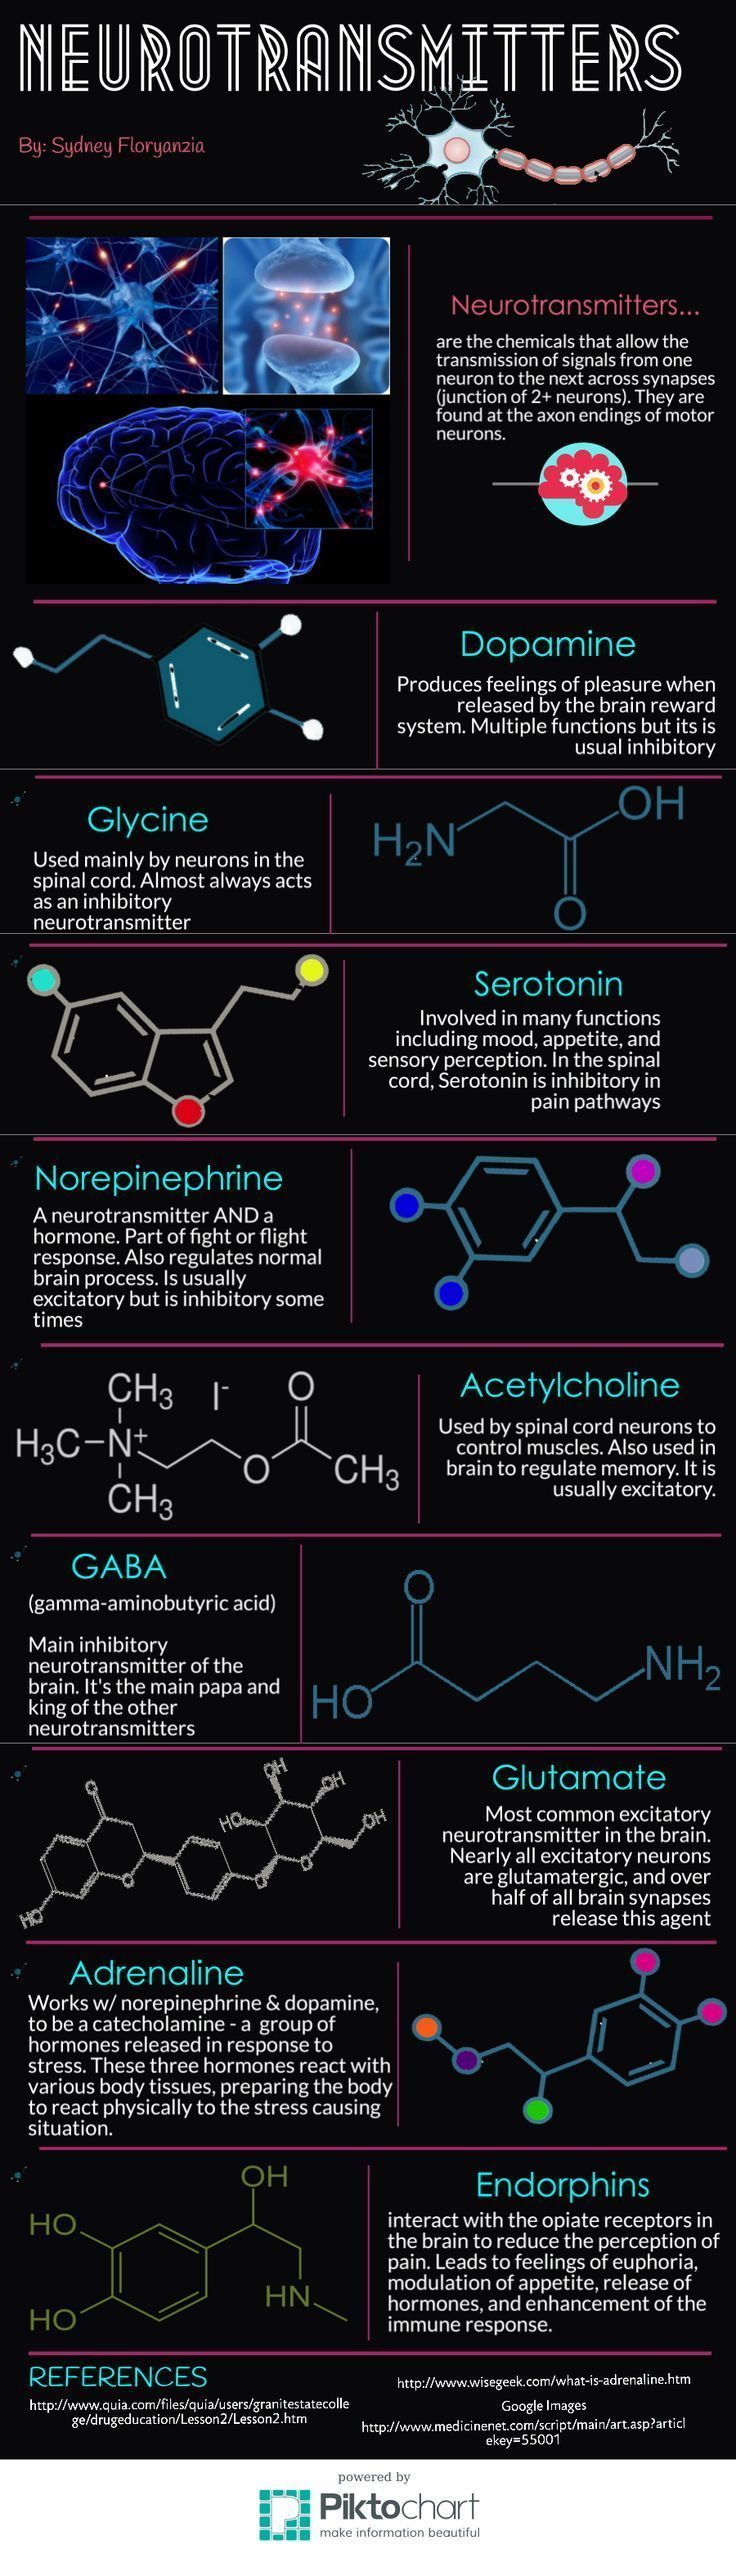 Infographic on neurotransmitters in the brain. Neuroscience. Brain. Infographics. Science. Neurons.